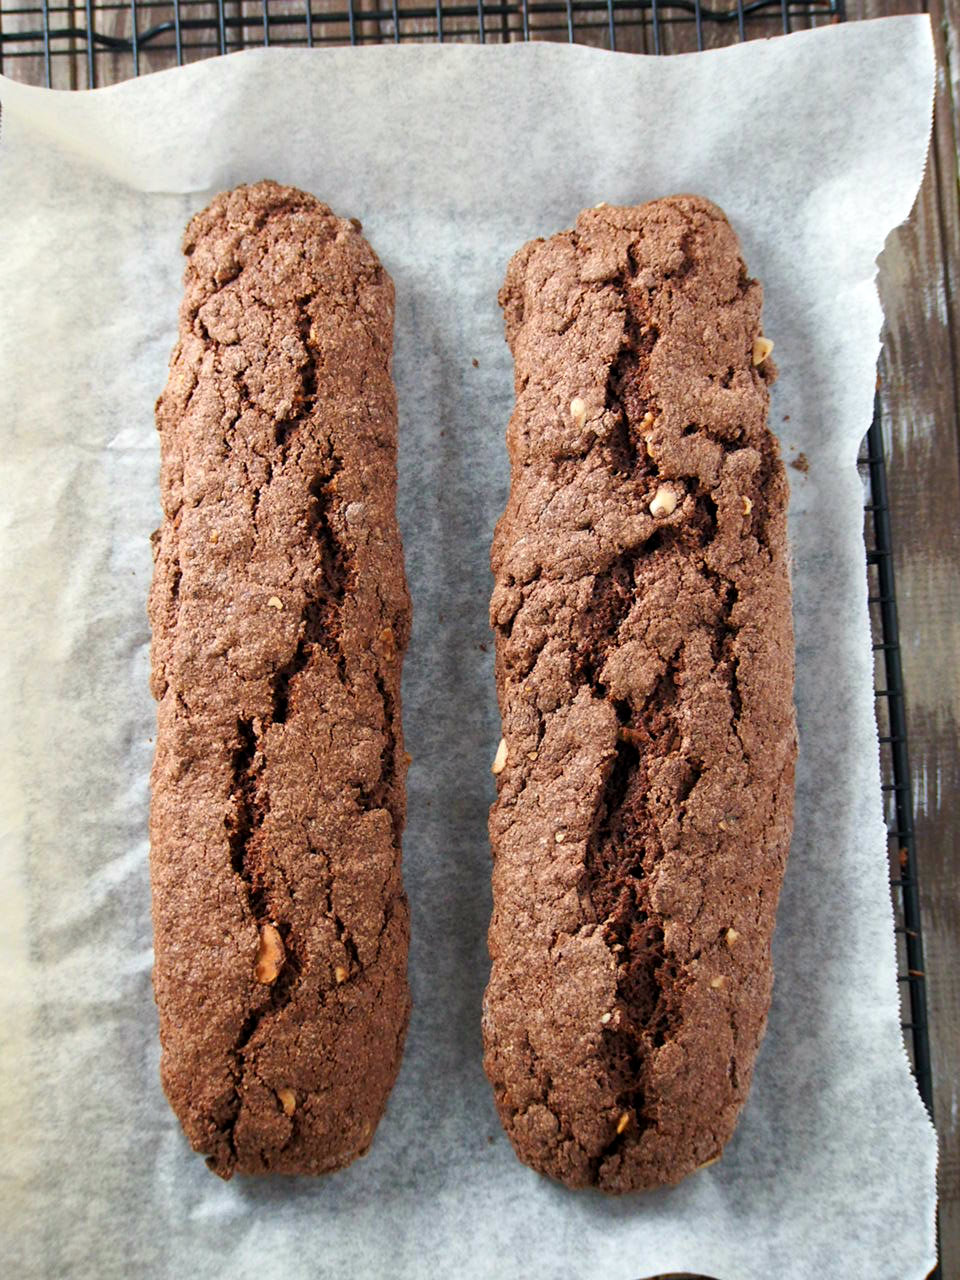 The biscotti after the first baking.